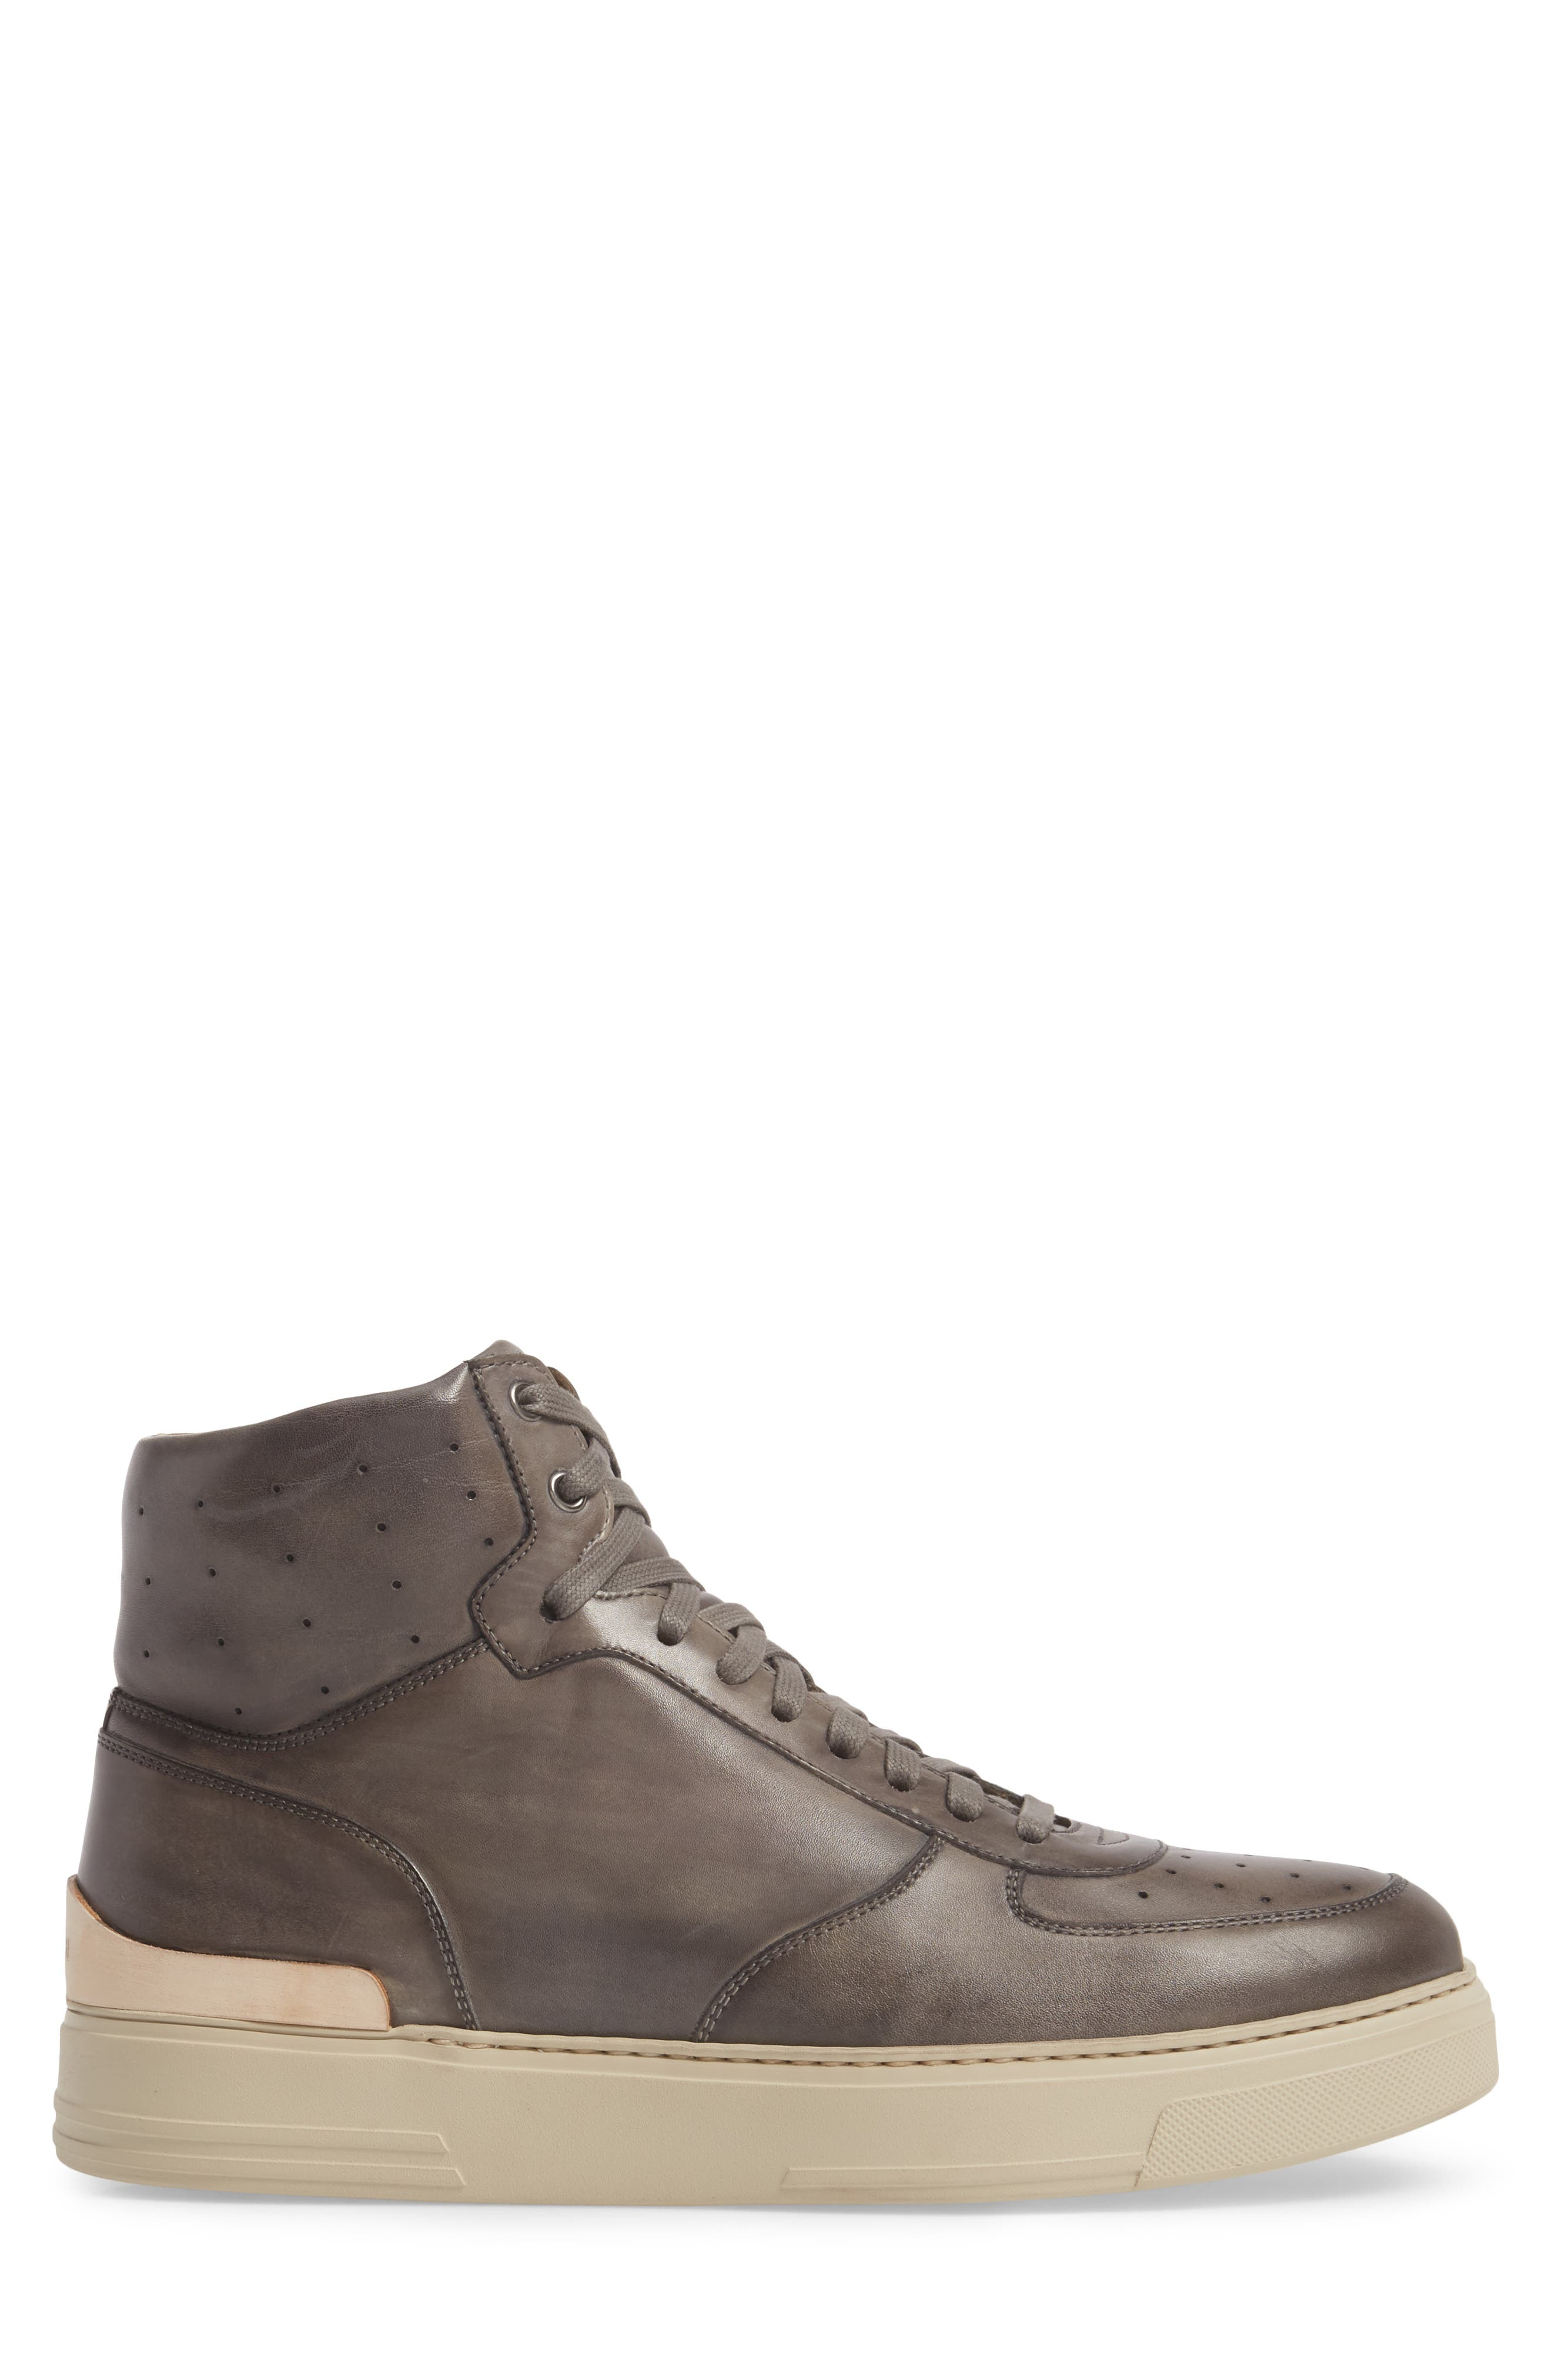 Varro Hi Top Lace Up Sneaker,                             Alternate thumbnail 5, color,                             Grey/ Grey Leather